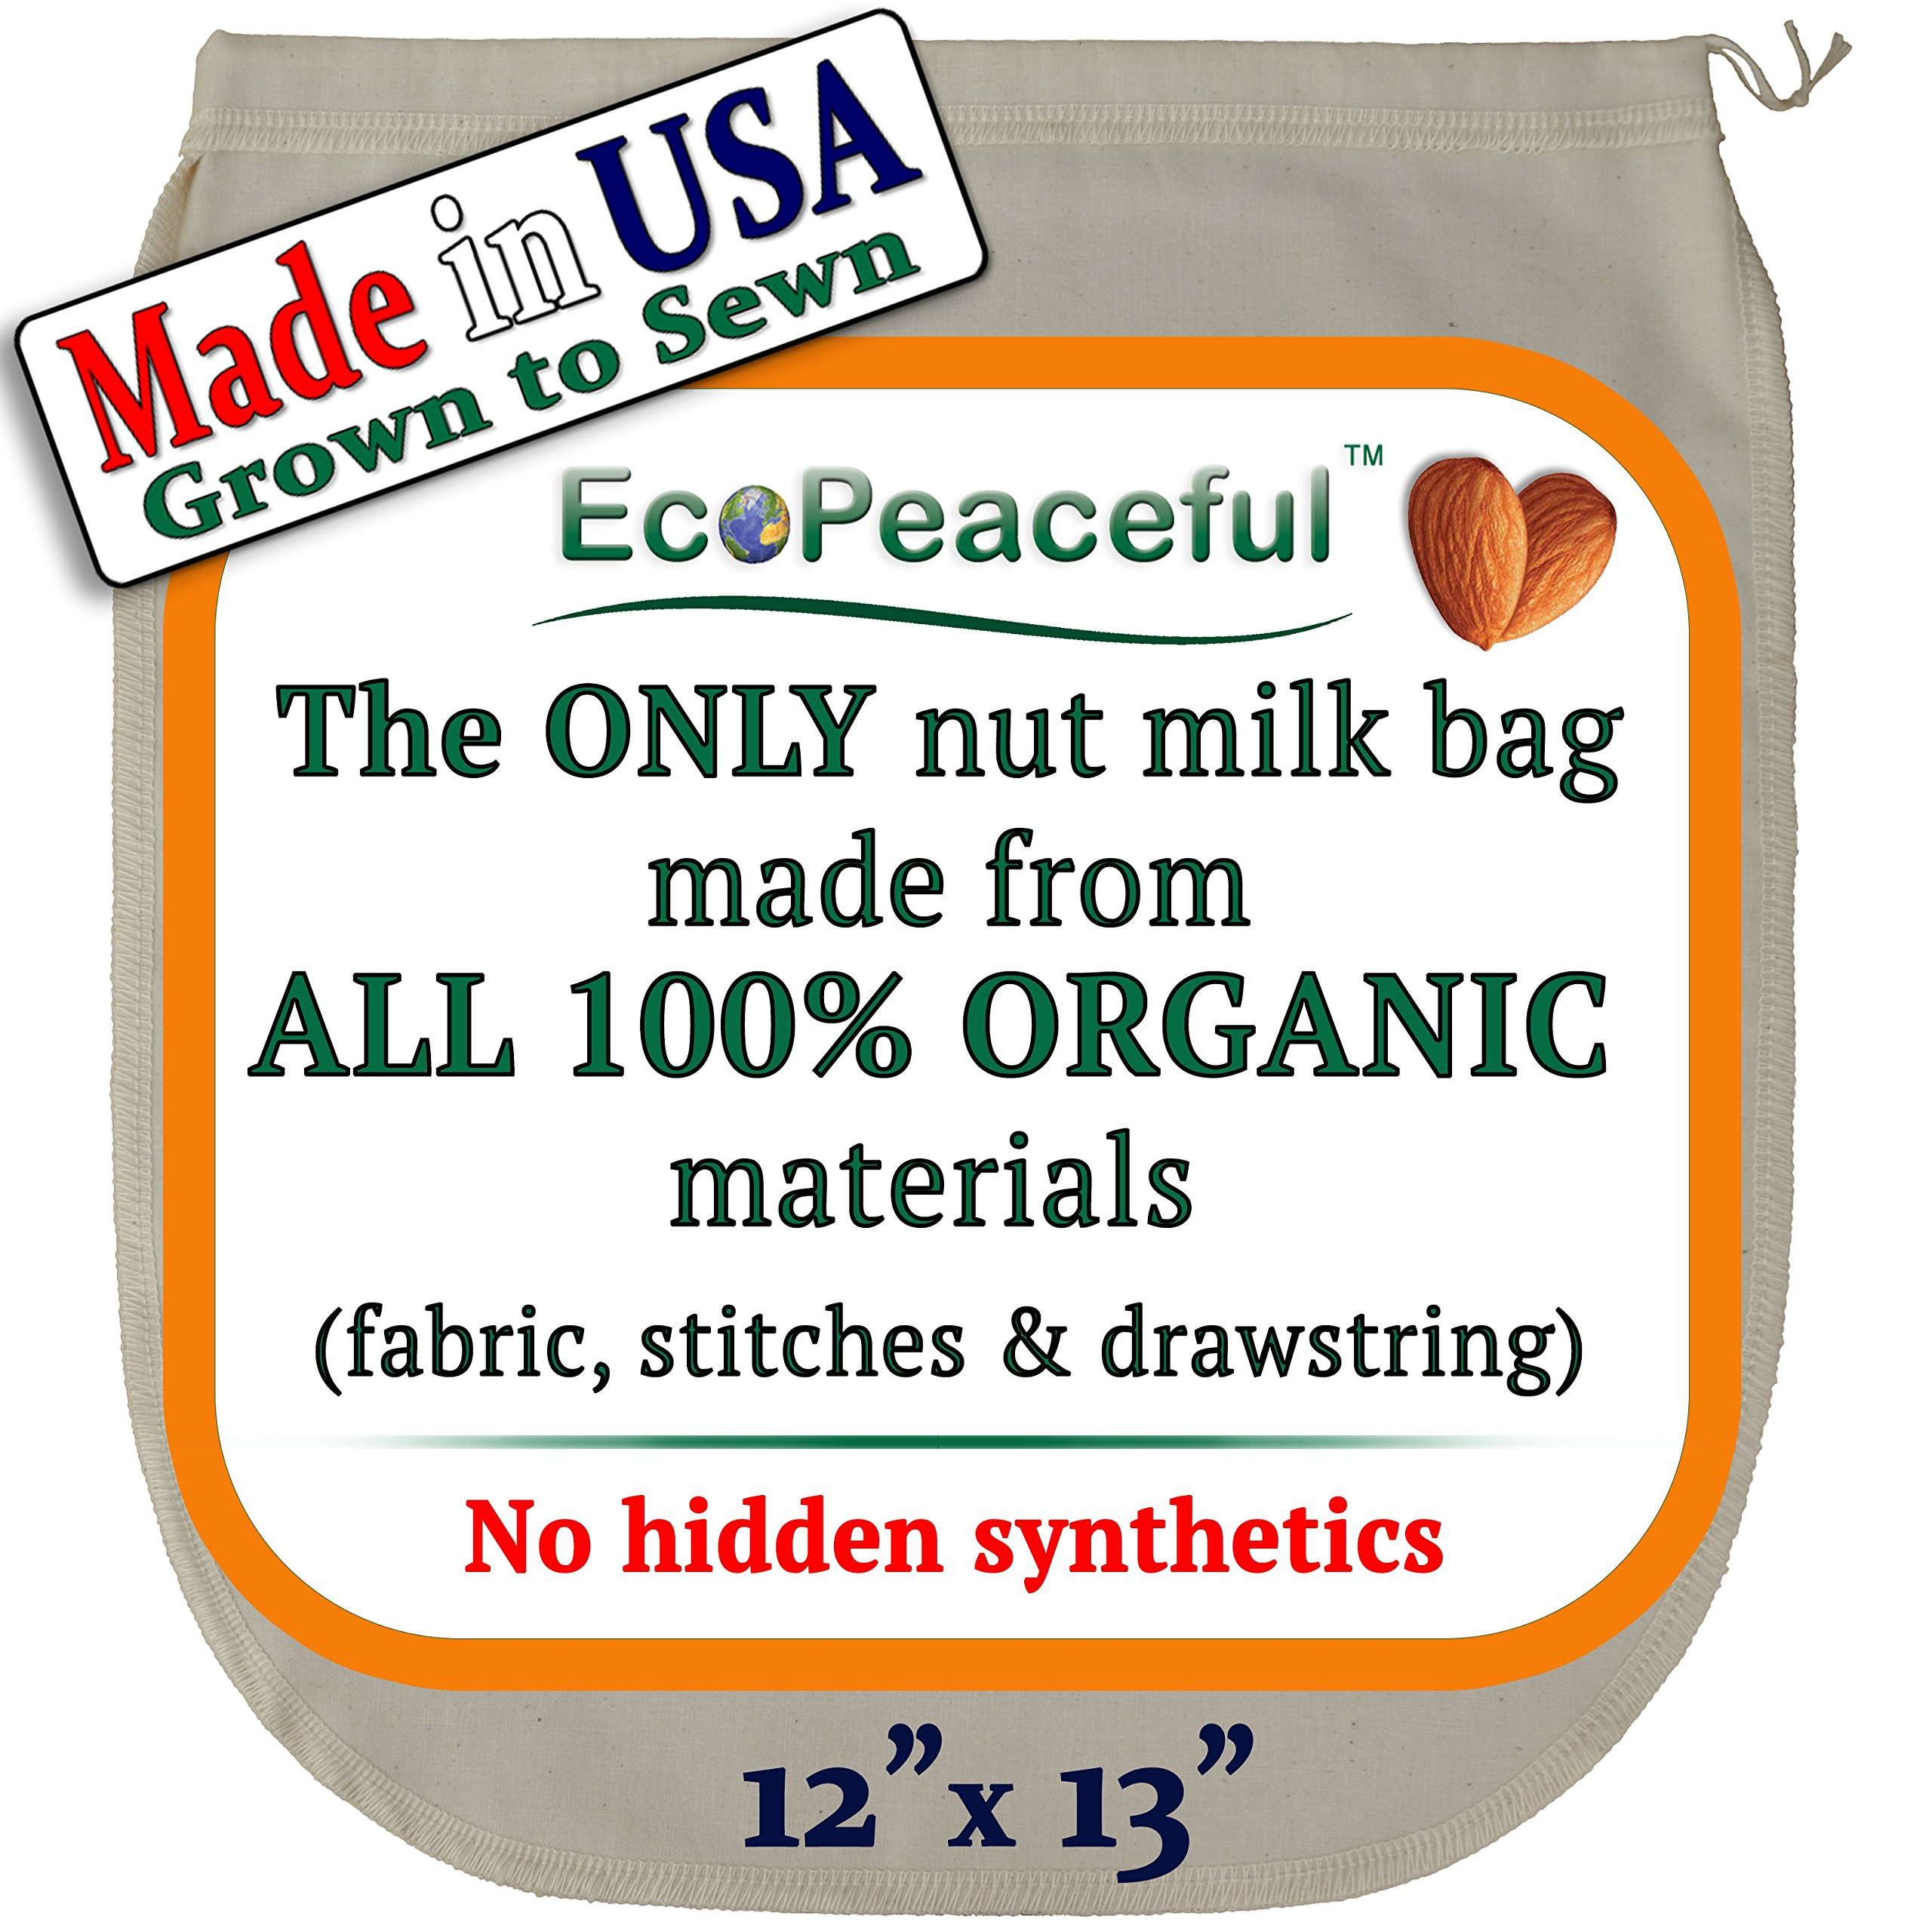 Organic Nut Milk Bag - The ONLY All 100% Organic Nut Bag (See our: Fake Organic Warning) - All Natural Reusable Organic Cotton Nut Milk Bag Strainer - Made in USA. Dairy-free Recipes, Videos & Support